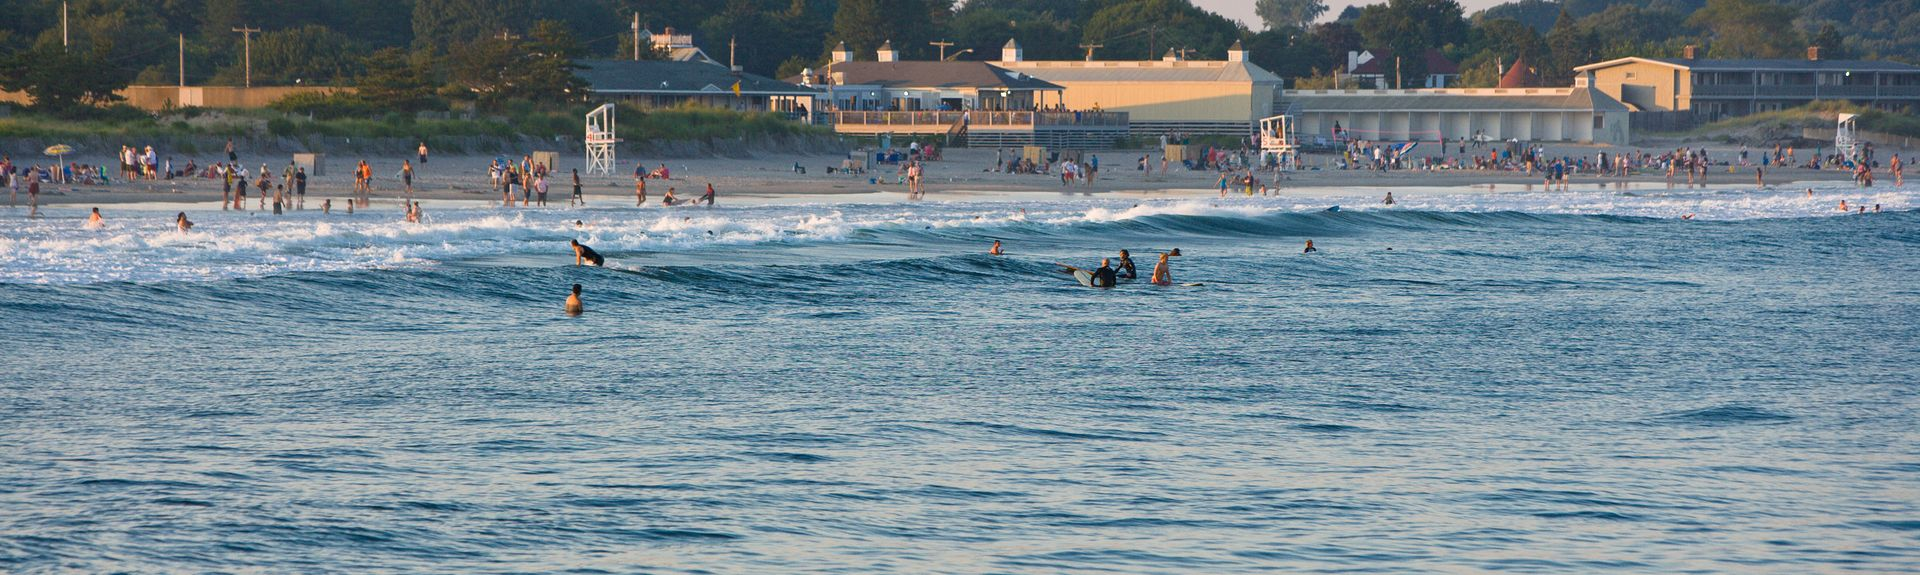 Narragansett Beach, Narragansett, Rhode Island, United States of America